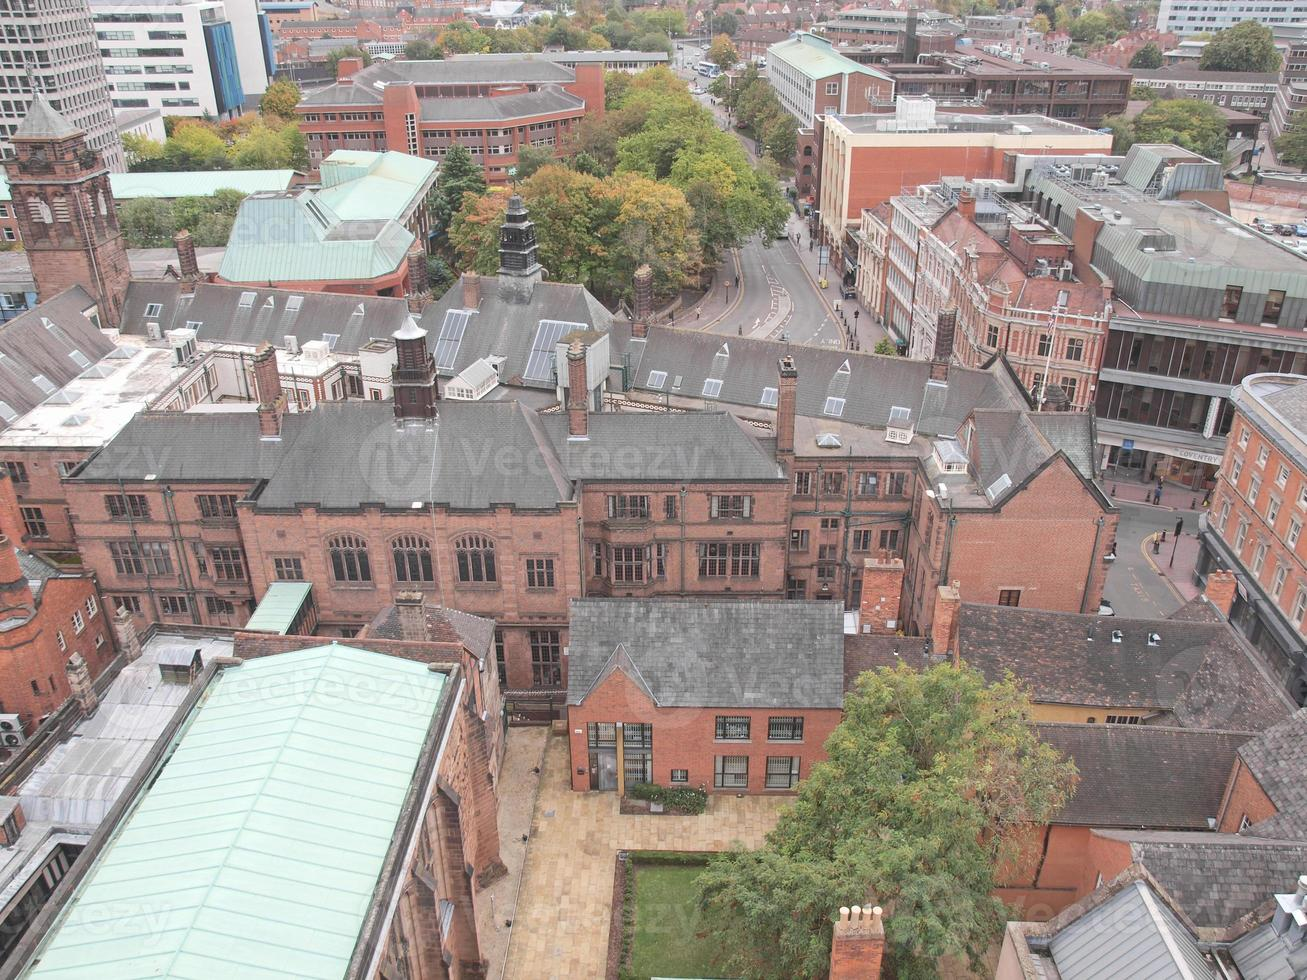 City of Coventry photo